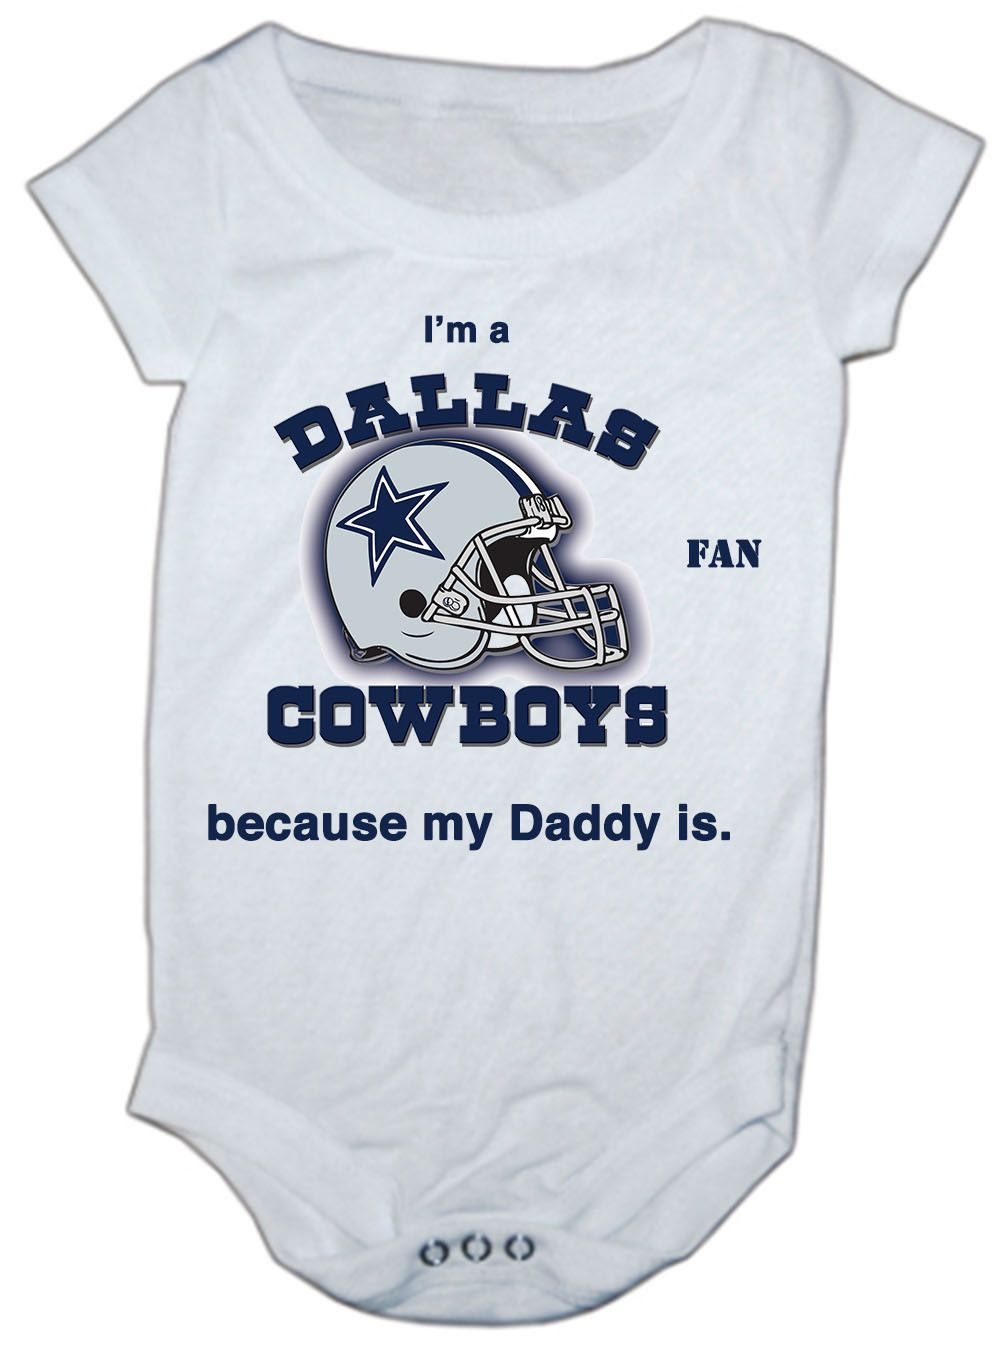 Dallas Cowboys Baby Clothes Impressive Dallas #cowboys #baby Cowboys #cowboys Creeper #creeper #dallas Inspiration Design